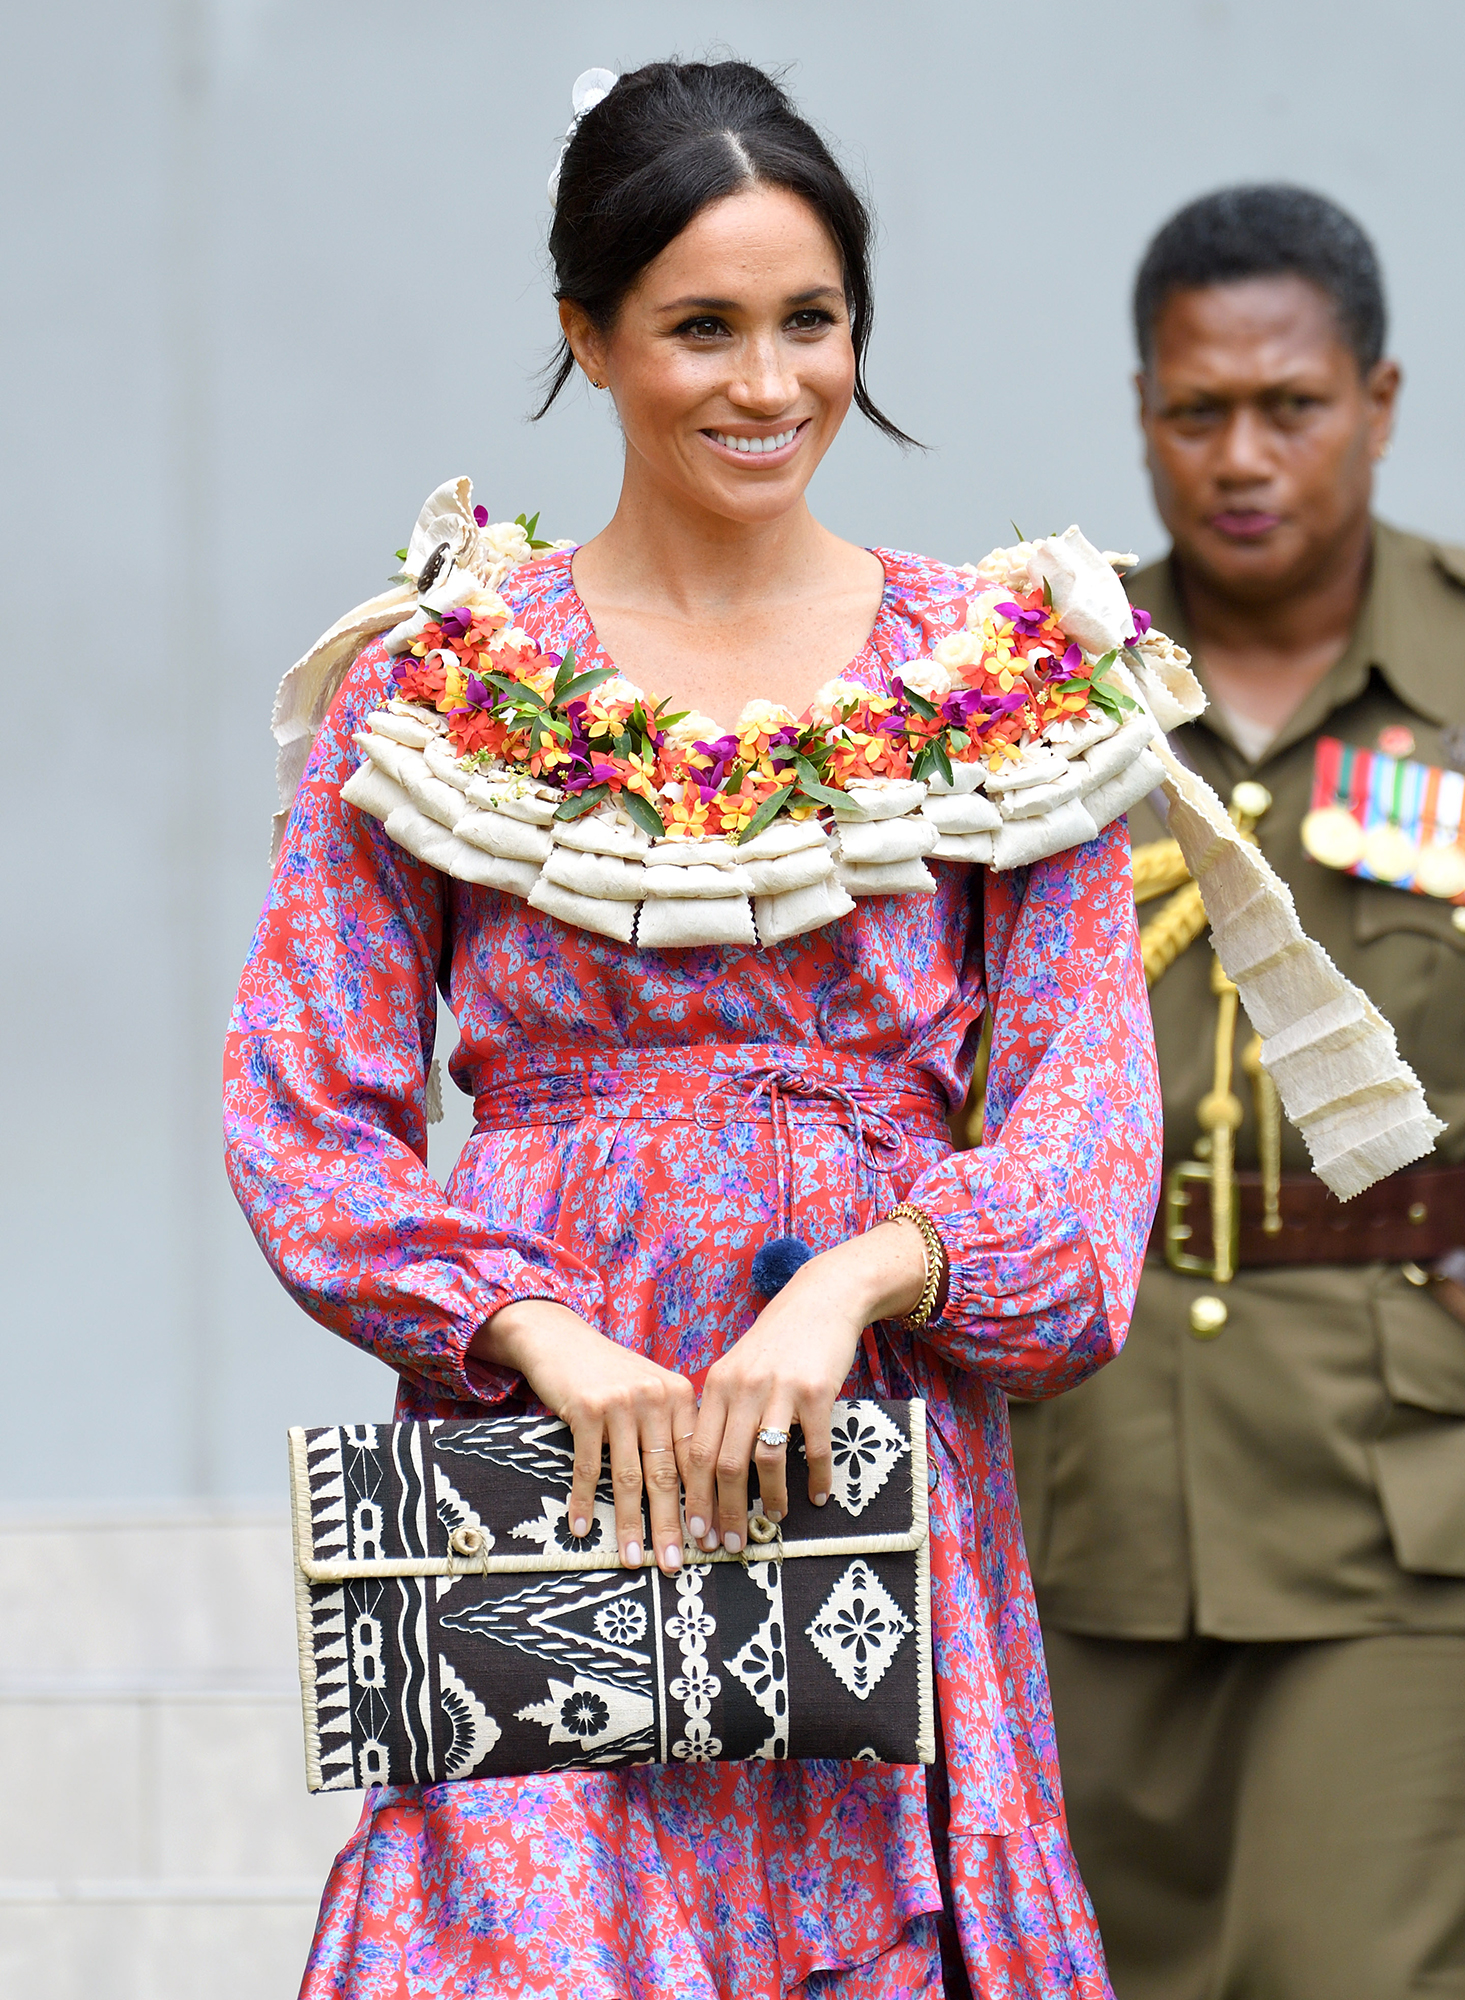 Differences Duchess Meghan Duchess Kate During Pregnancy - Because of her hyperemesis gravidarum diagnosis, Kate didn't travel much during her pregnancy, but Meghan has been globe-trotting. Not only was she on a royal tour with Harry when Kensington Palace confirmed that she is pregnant, but she flew to New York City for a baby shower in February 2019.